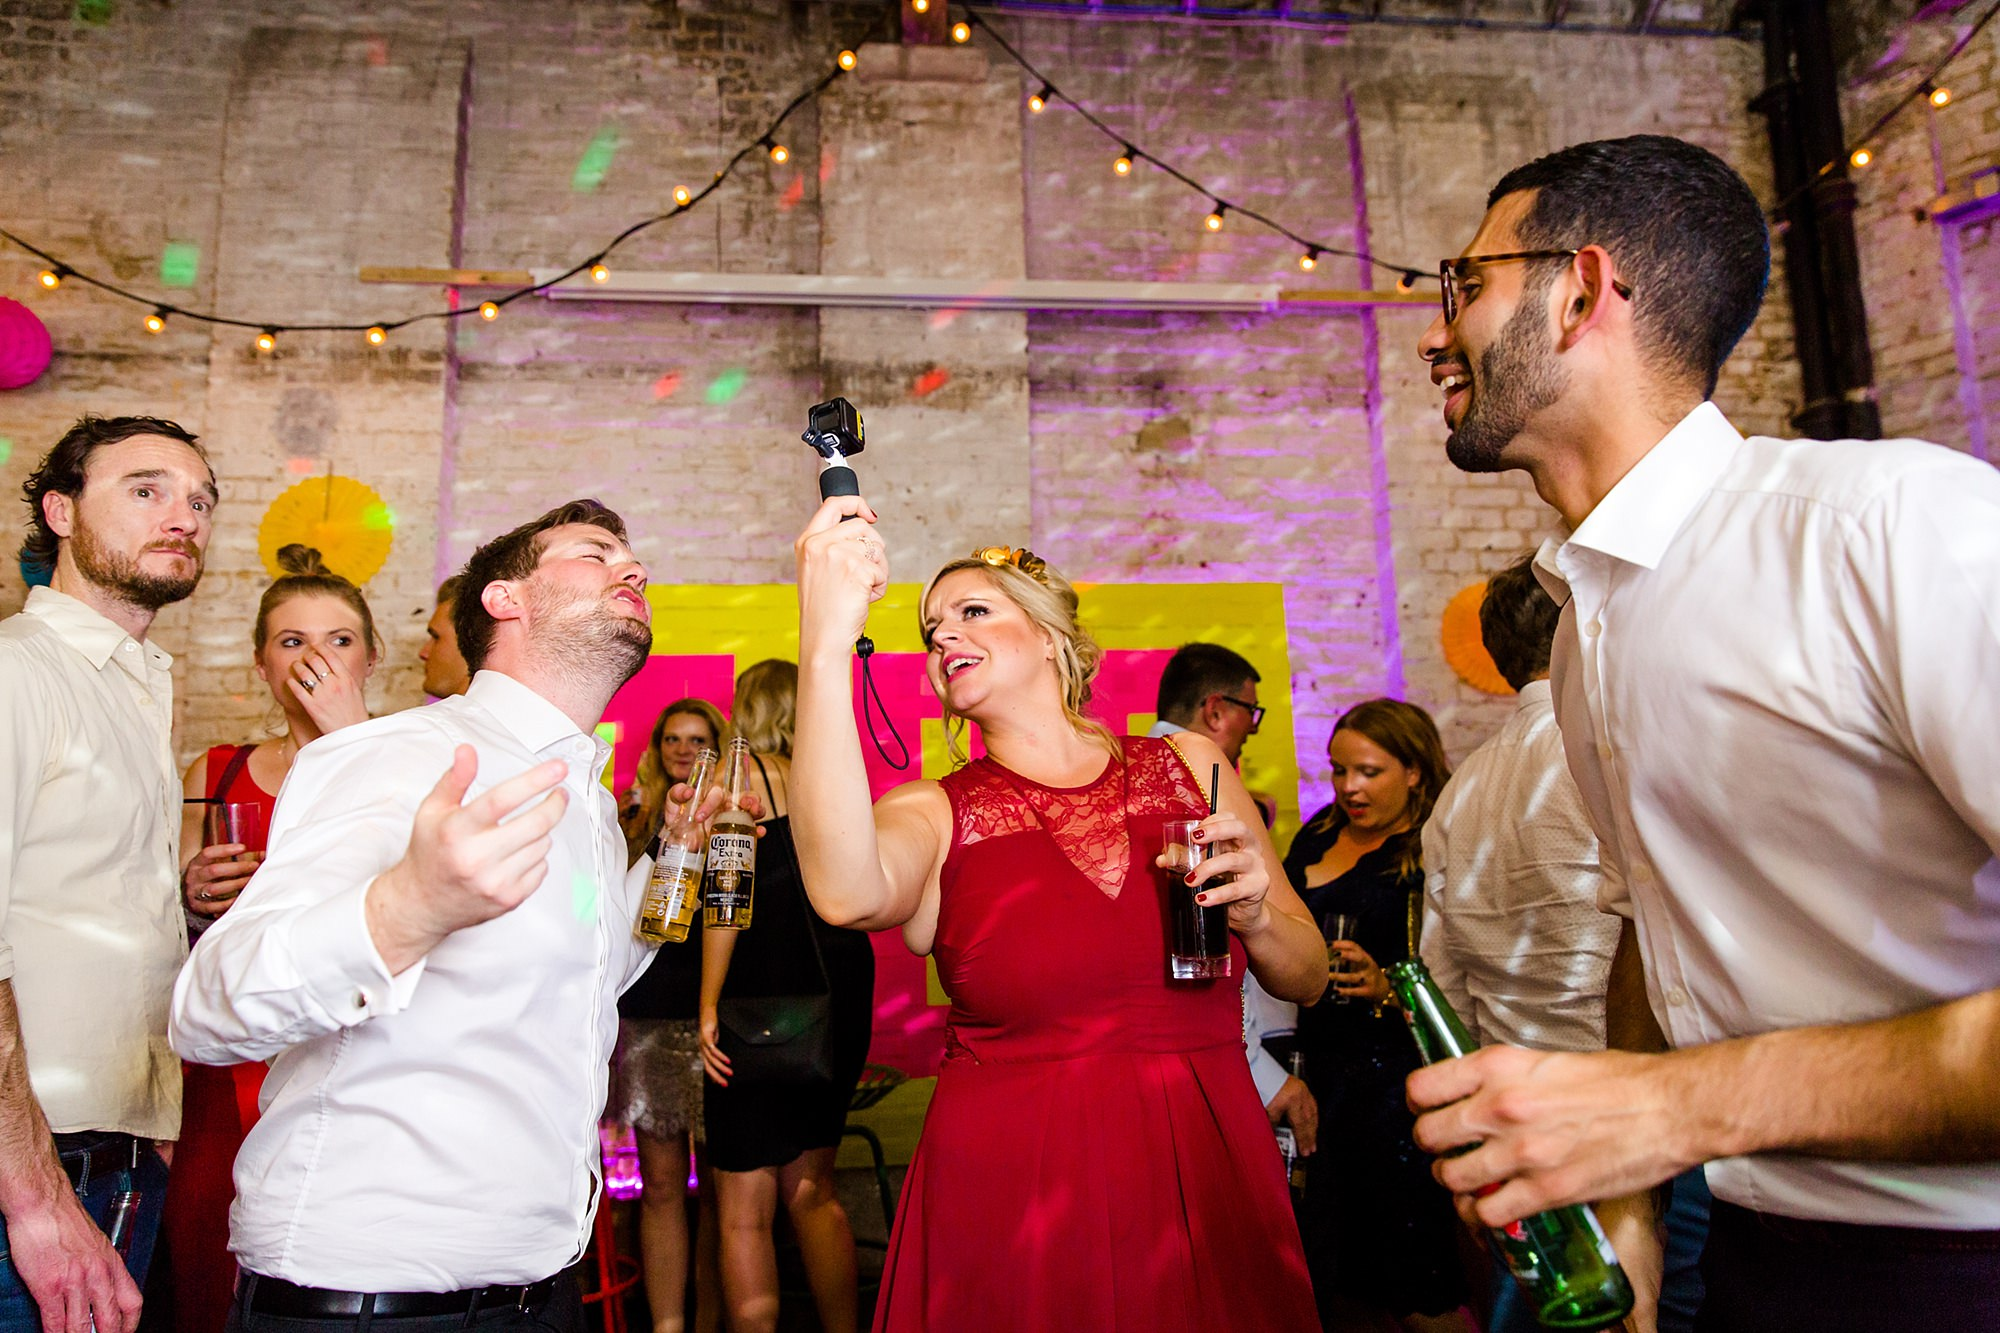 Fun London Wedding guests sing at a go pro camera during wedding party